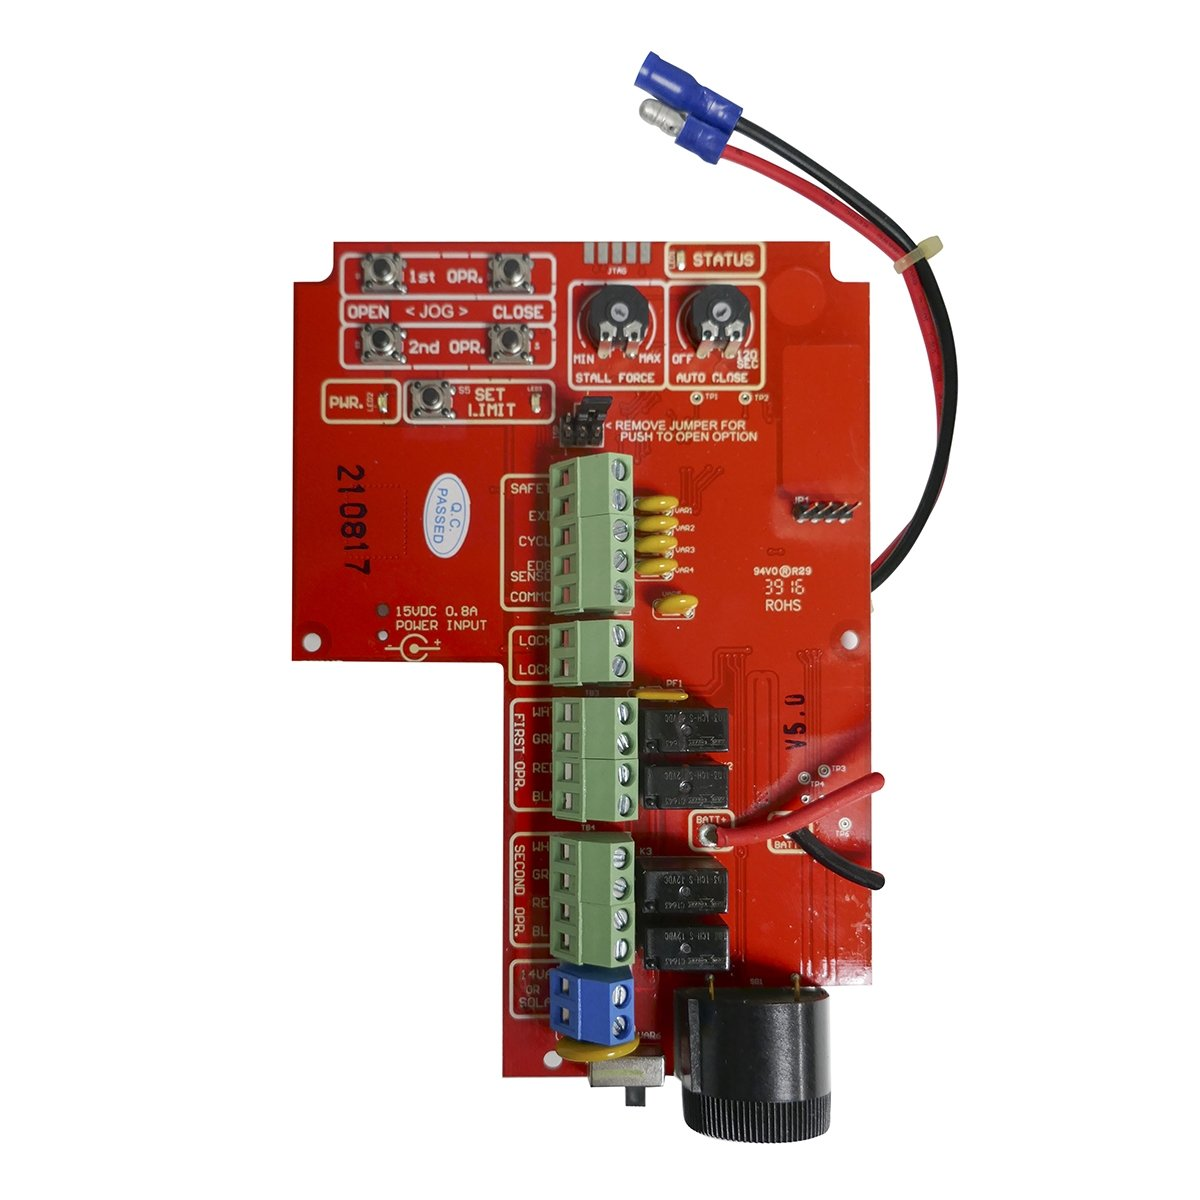 Mighty Mule / Linear GTO PRO R4722 / R5722 Replacement Control Board for the Mighty Mule 262 / 362 / 402 /462 / SW2000XLS / SW2002XLS by Linear Access Pro (Image #1)